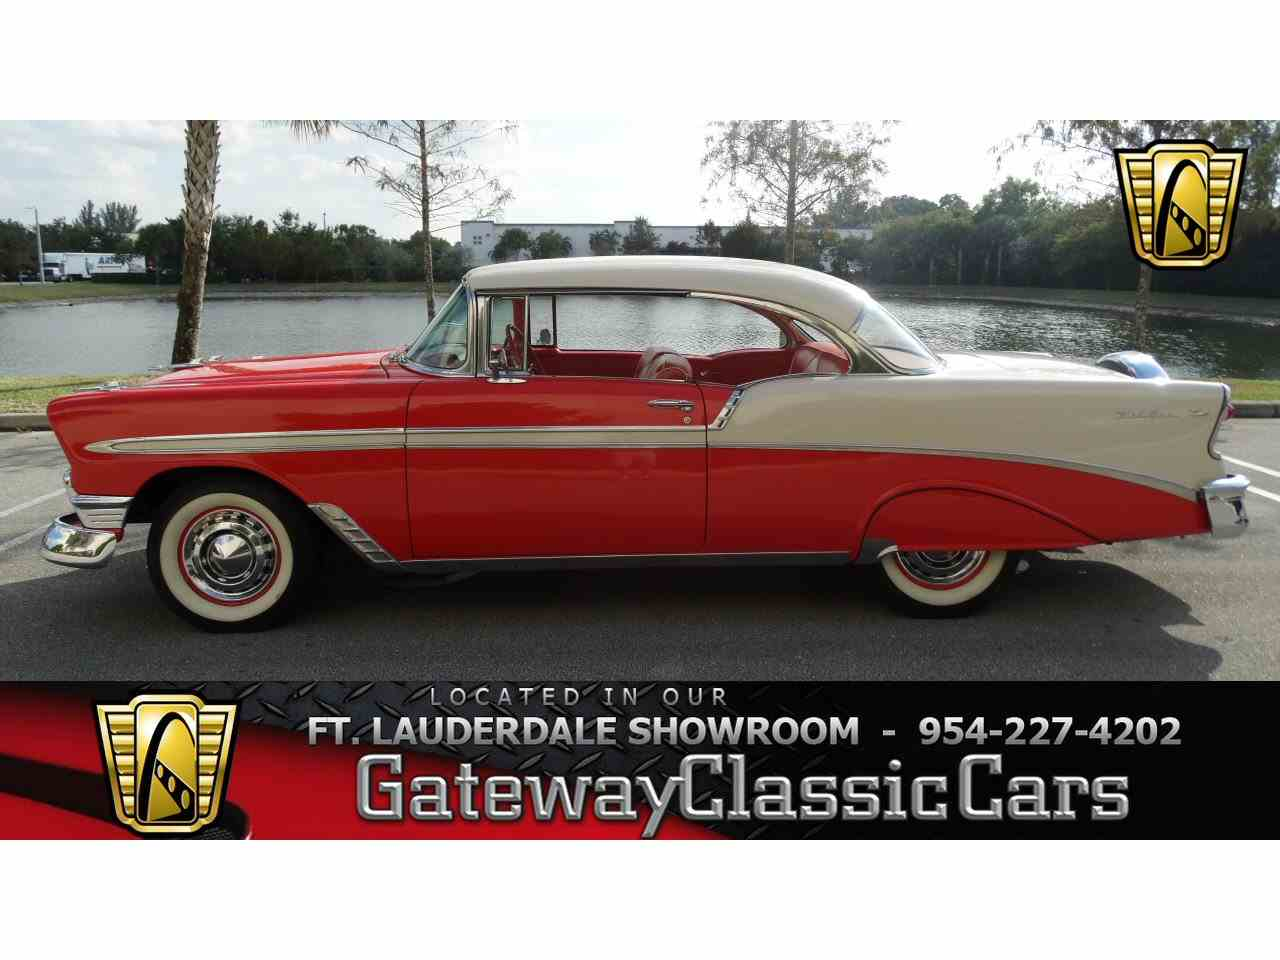 1956 chevrolet bel air for sale classic car liquidators - 1956 Chevrolet Bel Air For Sale Cc 957799